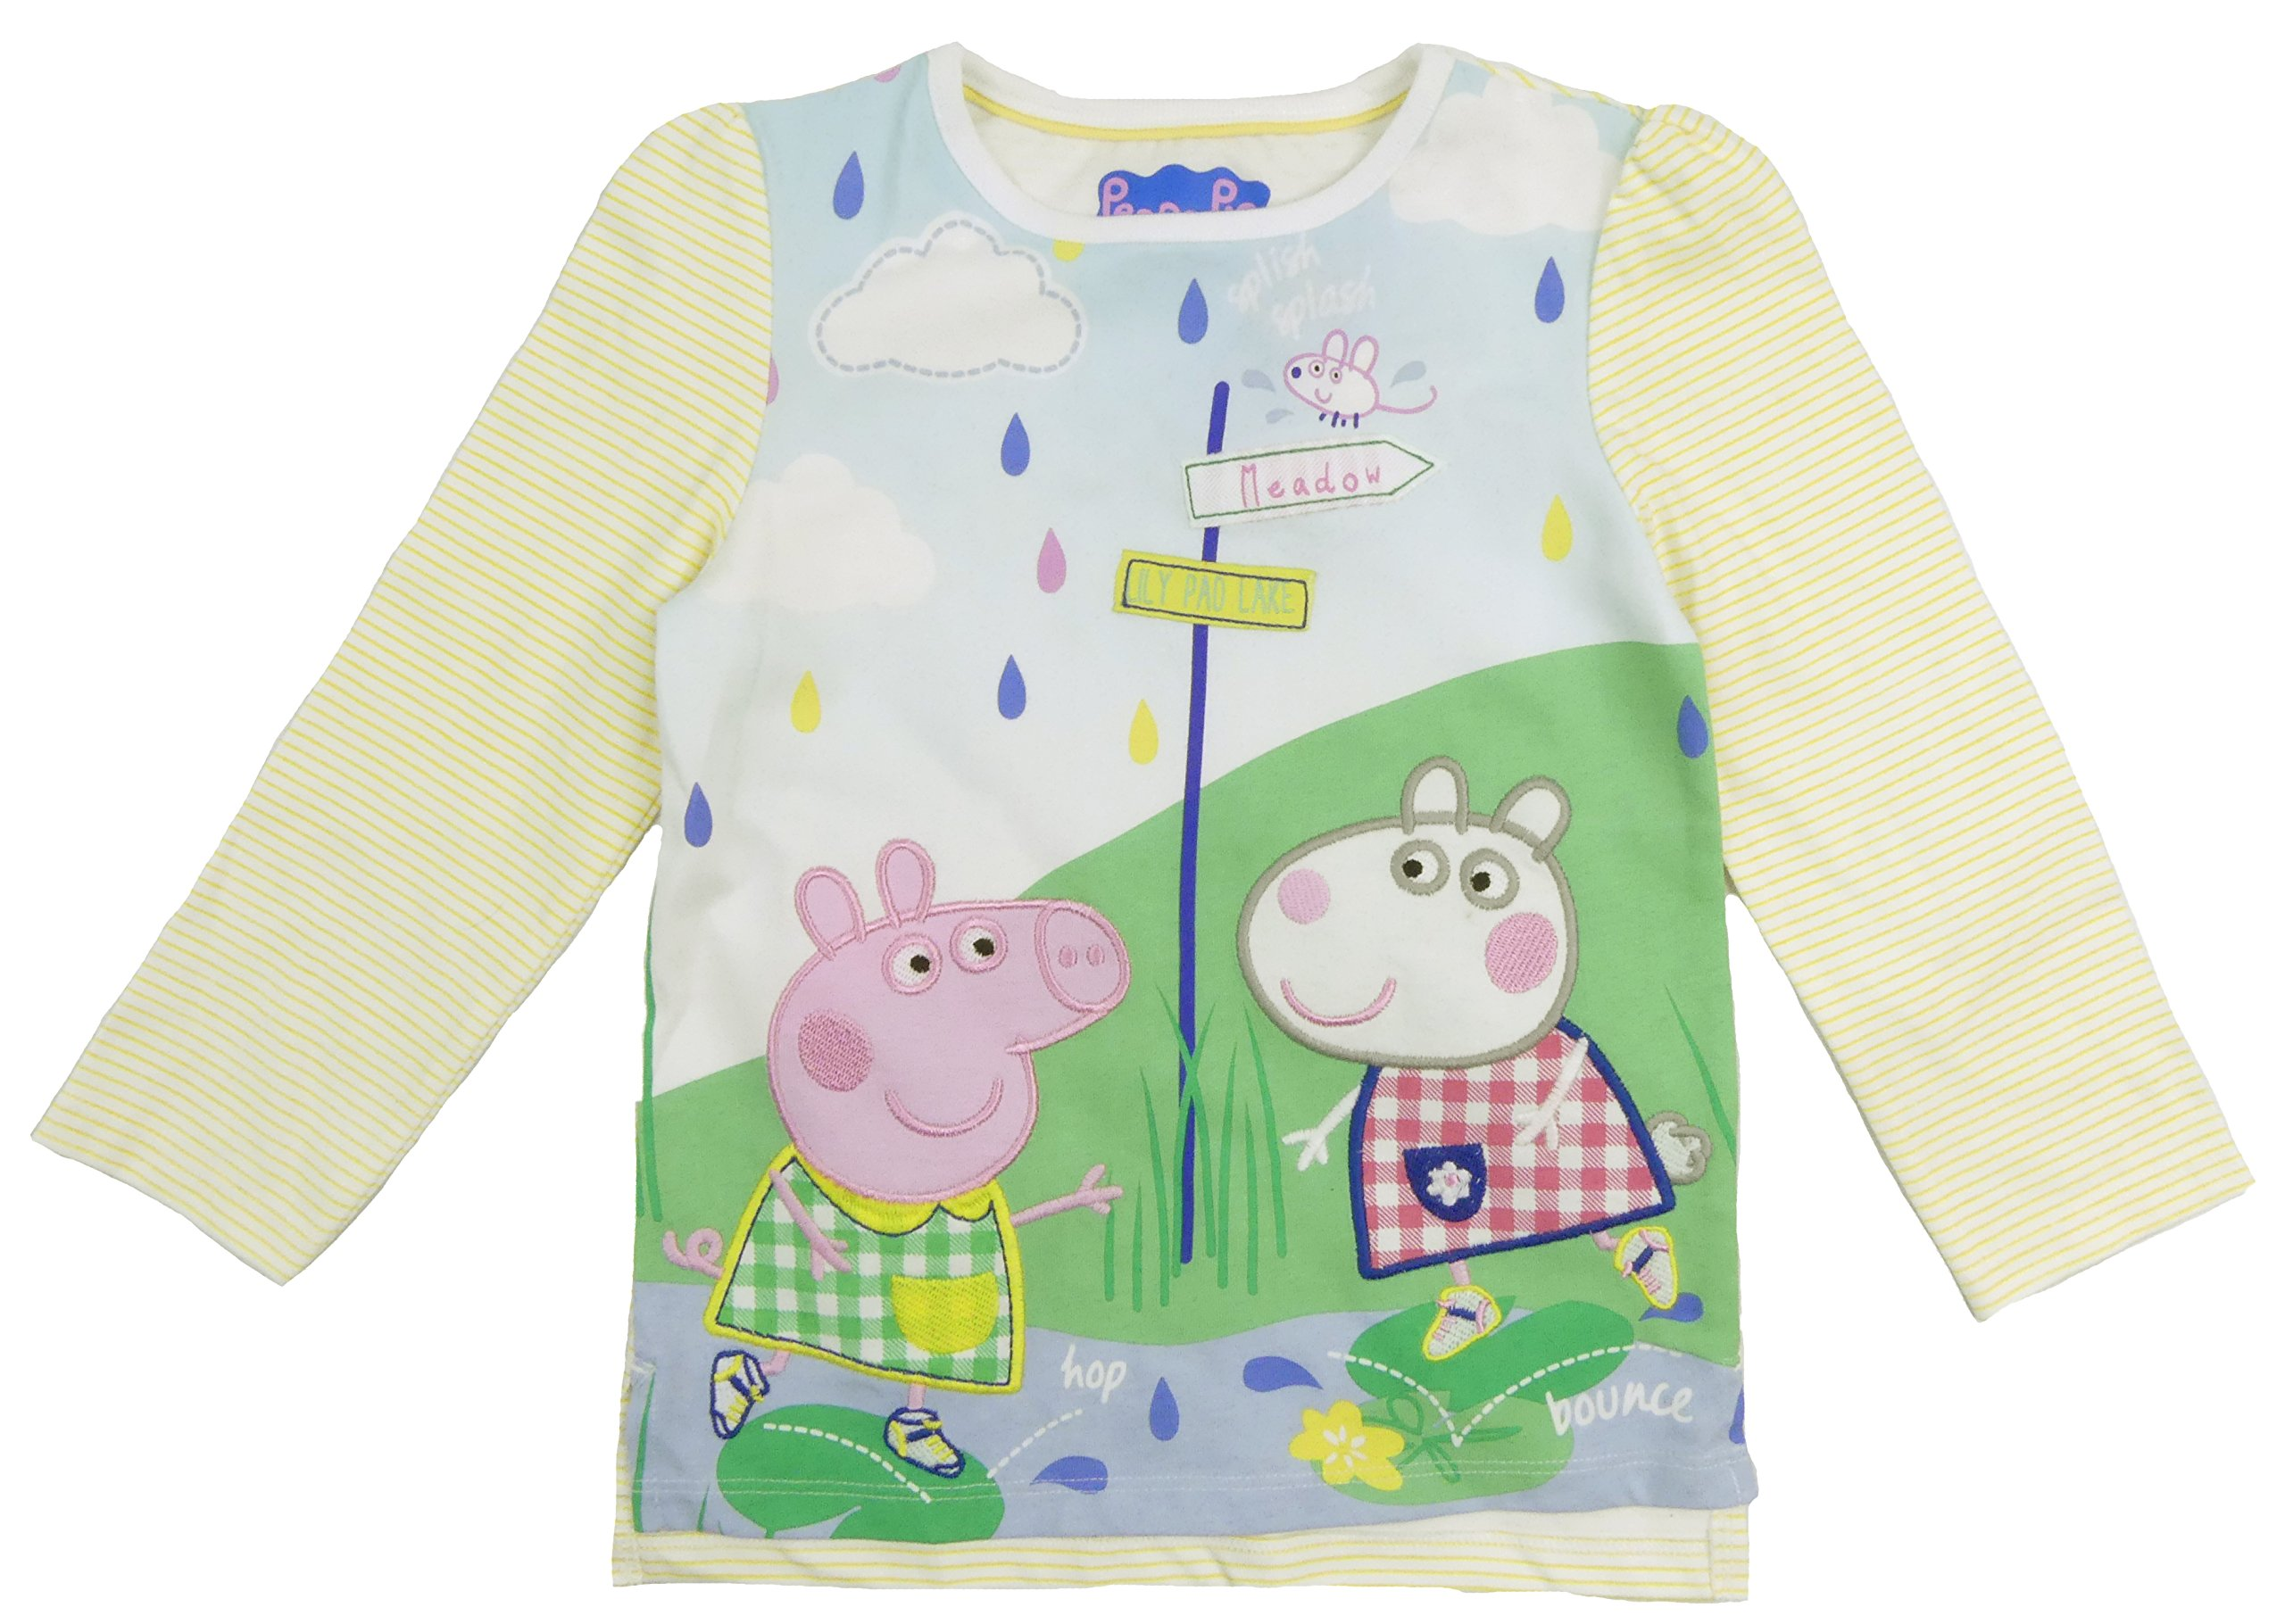 Peppa Pig Suzy Sheep Long Sleeve Summer Top Cotton Toddler Sizes (4-5 Years)